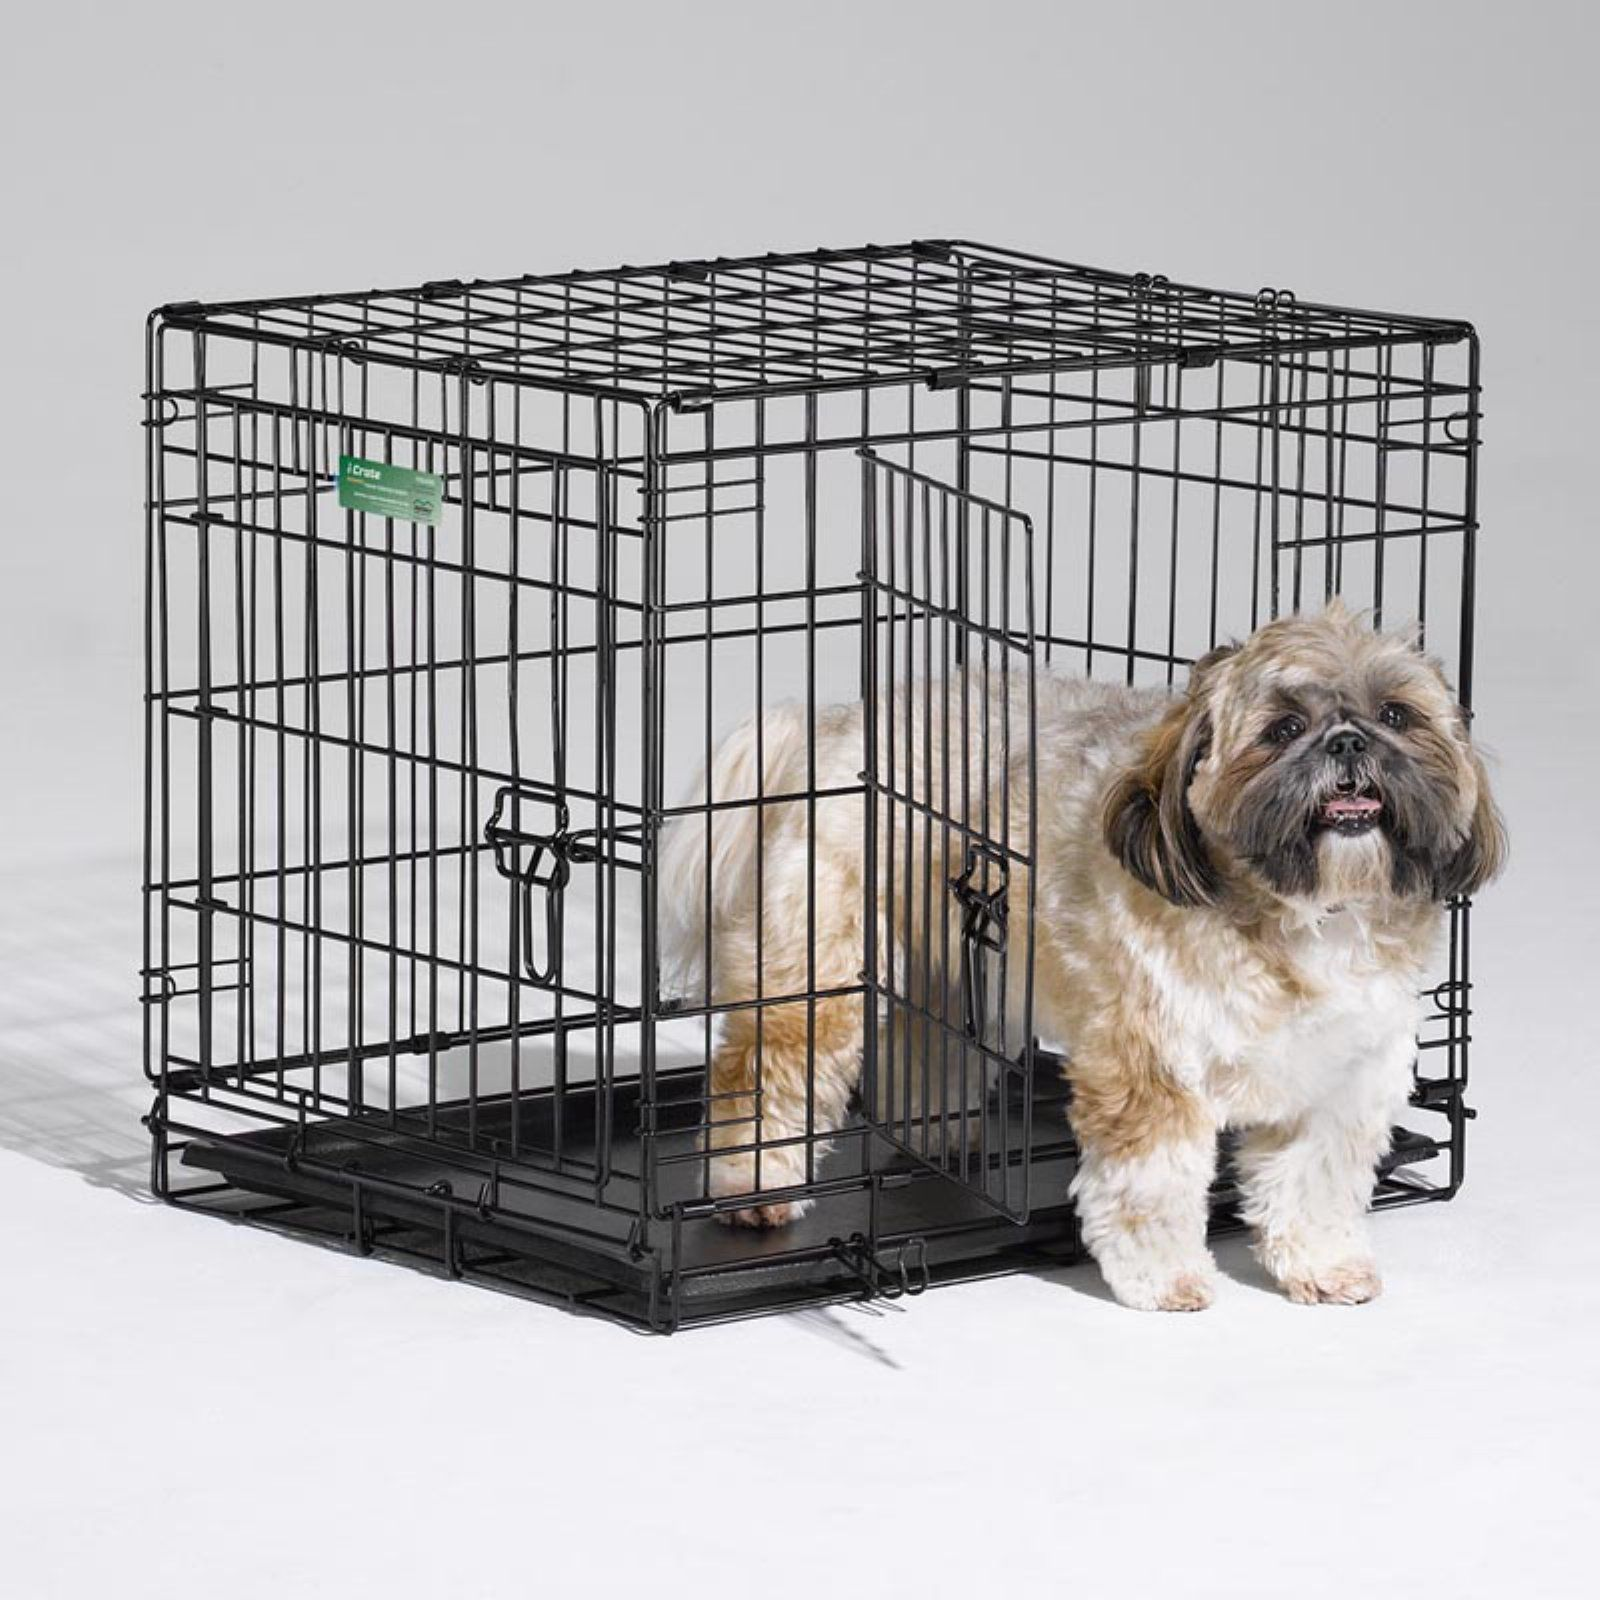 Midwest Homes For Pets Icrate Folding Double Door Metal Dog Crate